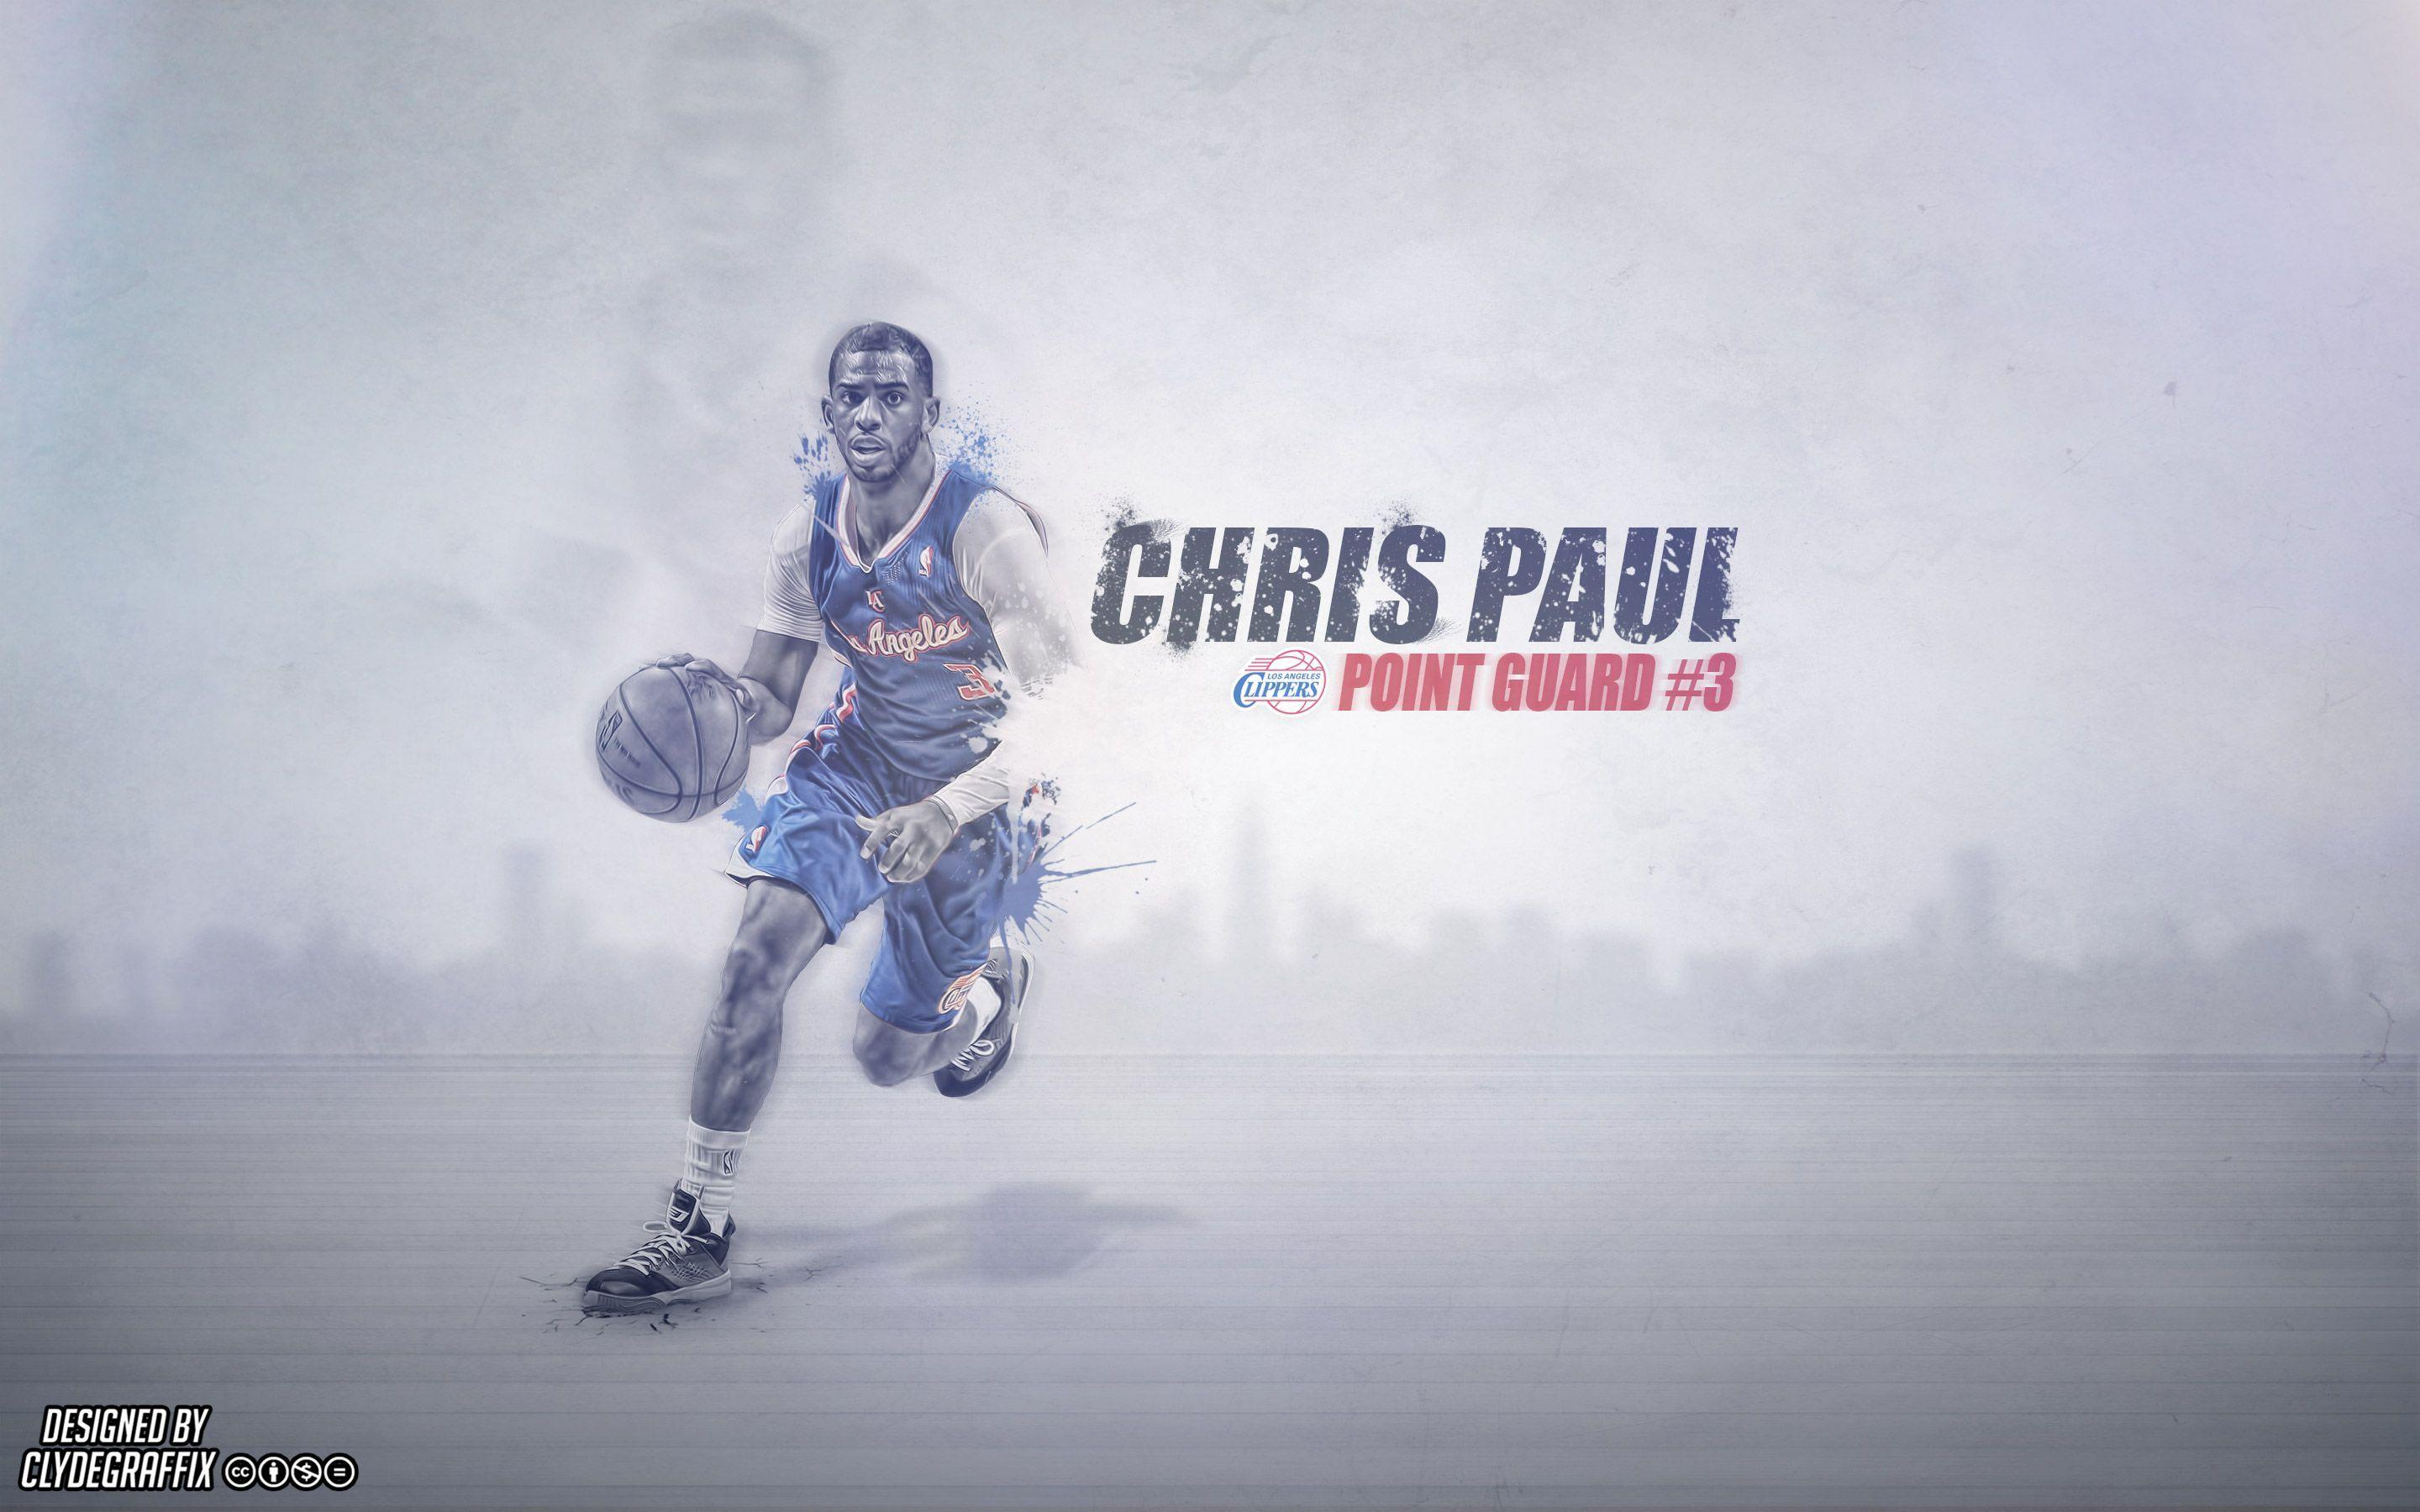 Chris Paul Wallpapers | Basketball Wallpapers at BasketWallpapers.com